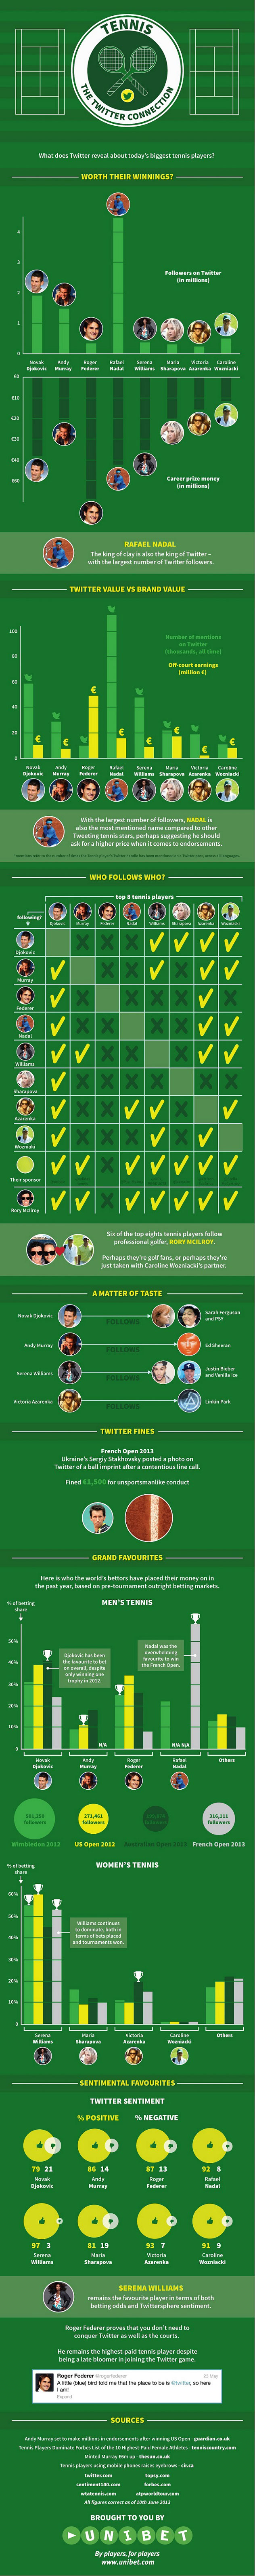 Top Tennis Players on Twitter-Infographic